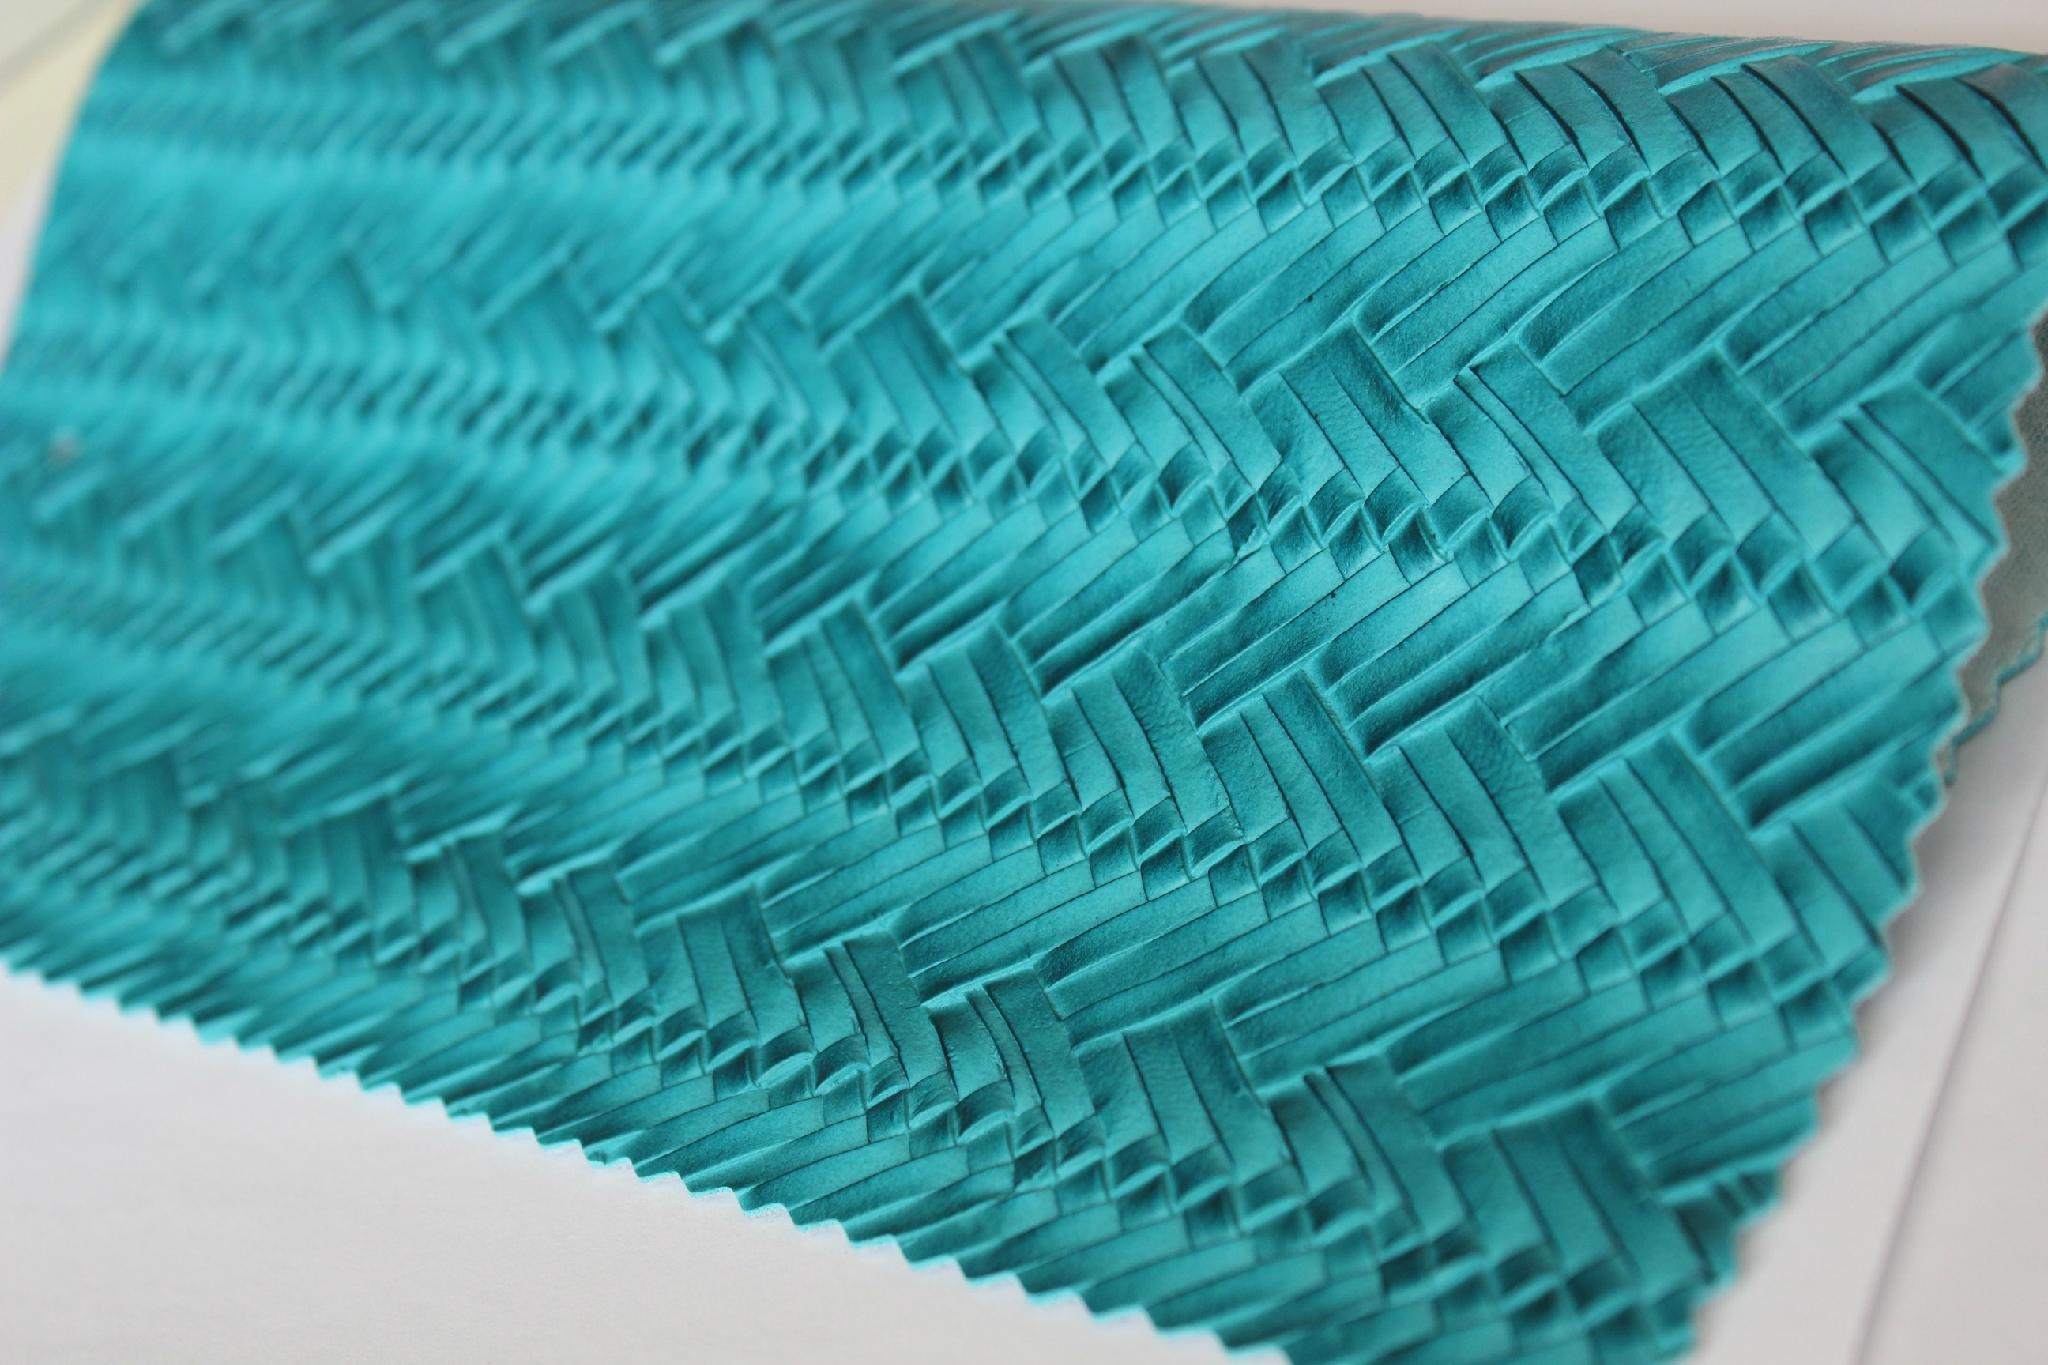 Guangzhou hot selling woven pattern pvc embossed leather fabric for making bags 4